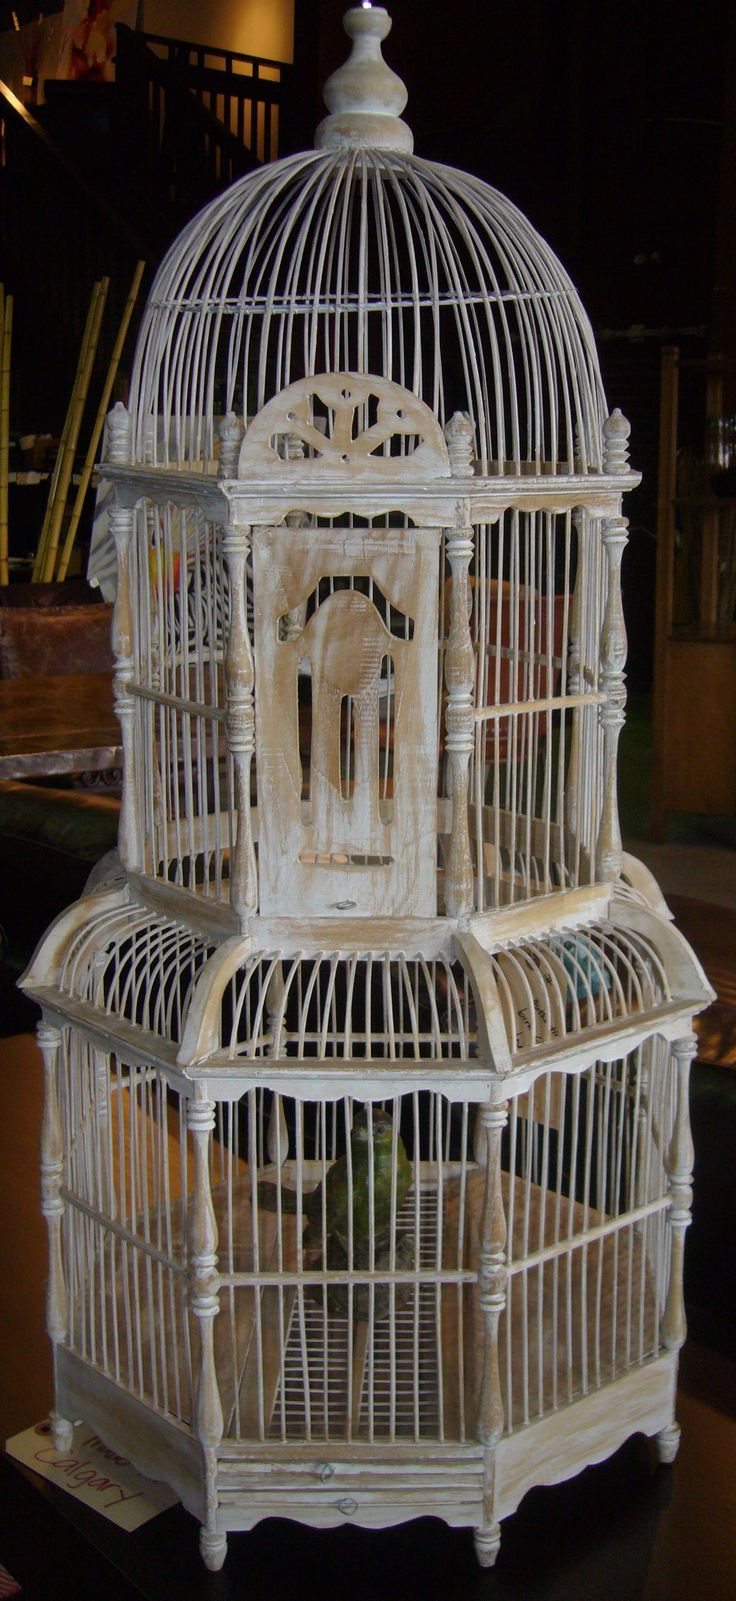 Rustic Chic Bird Cage! <3  Like us on Facebook and receive $25 off: www.facebook.com/showhomefurniture Or visit our website: www.showhomefurnituresale.com